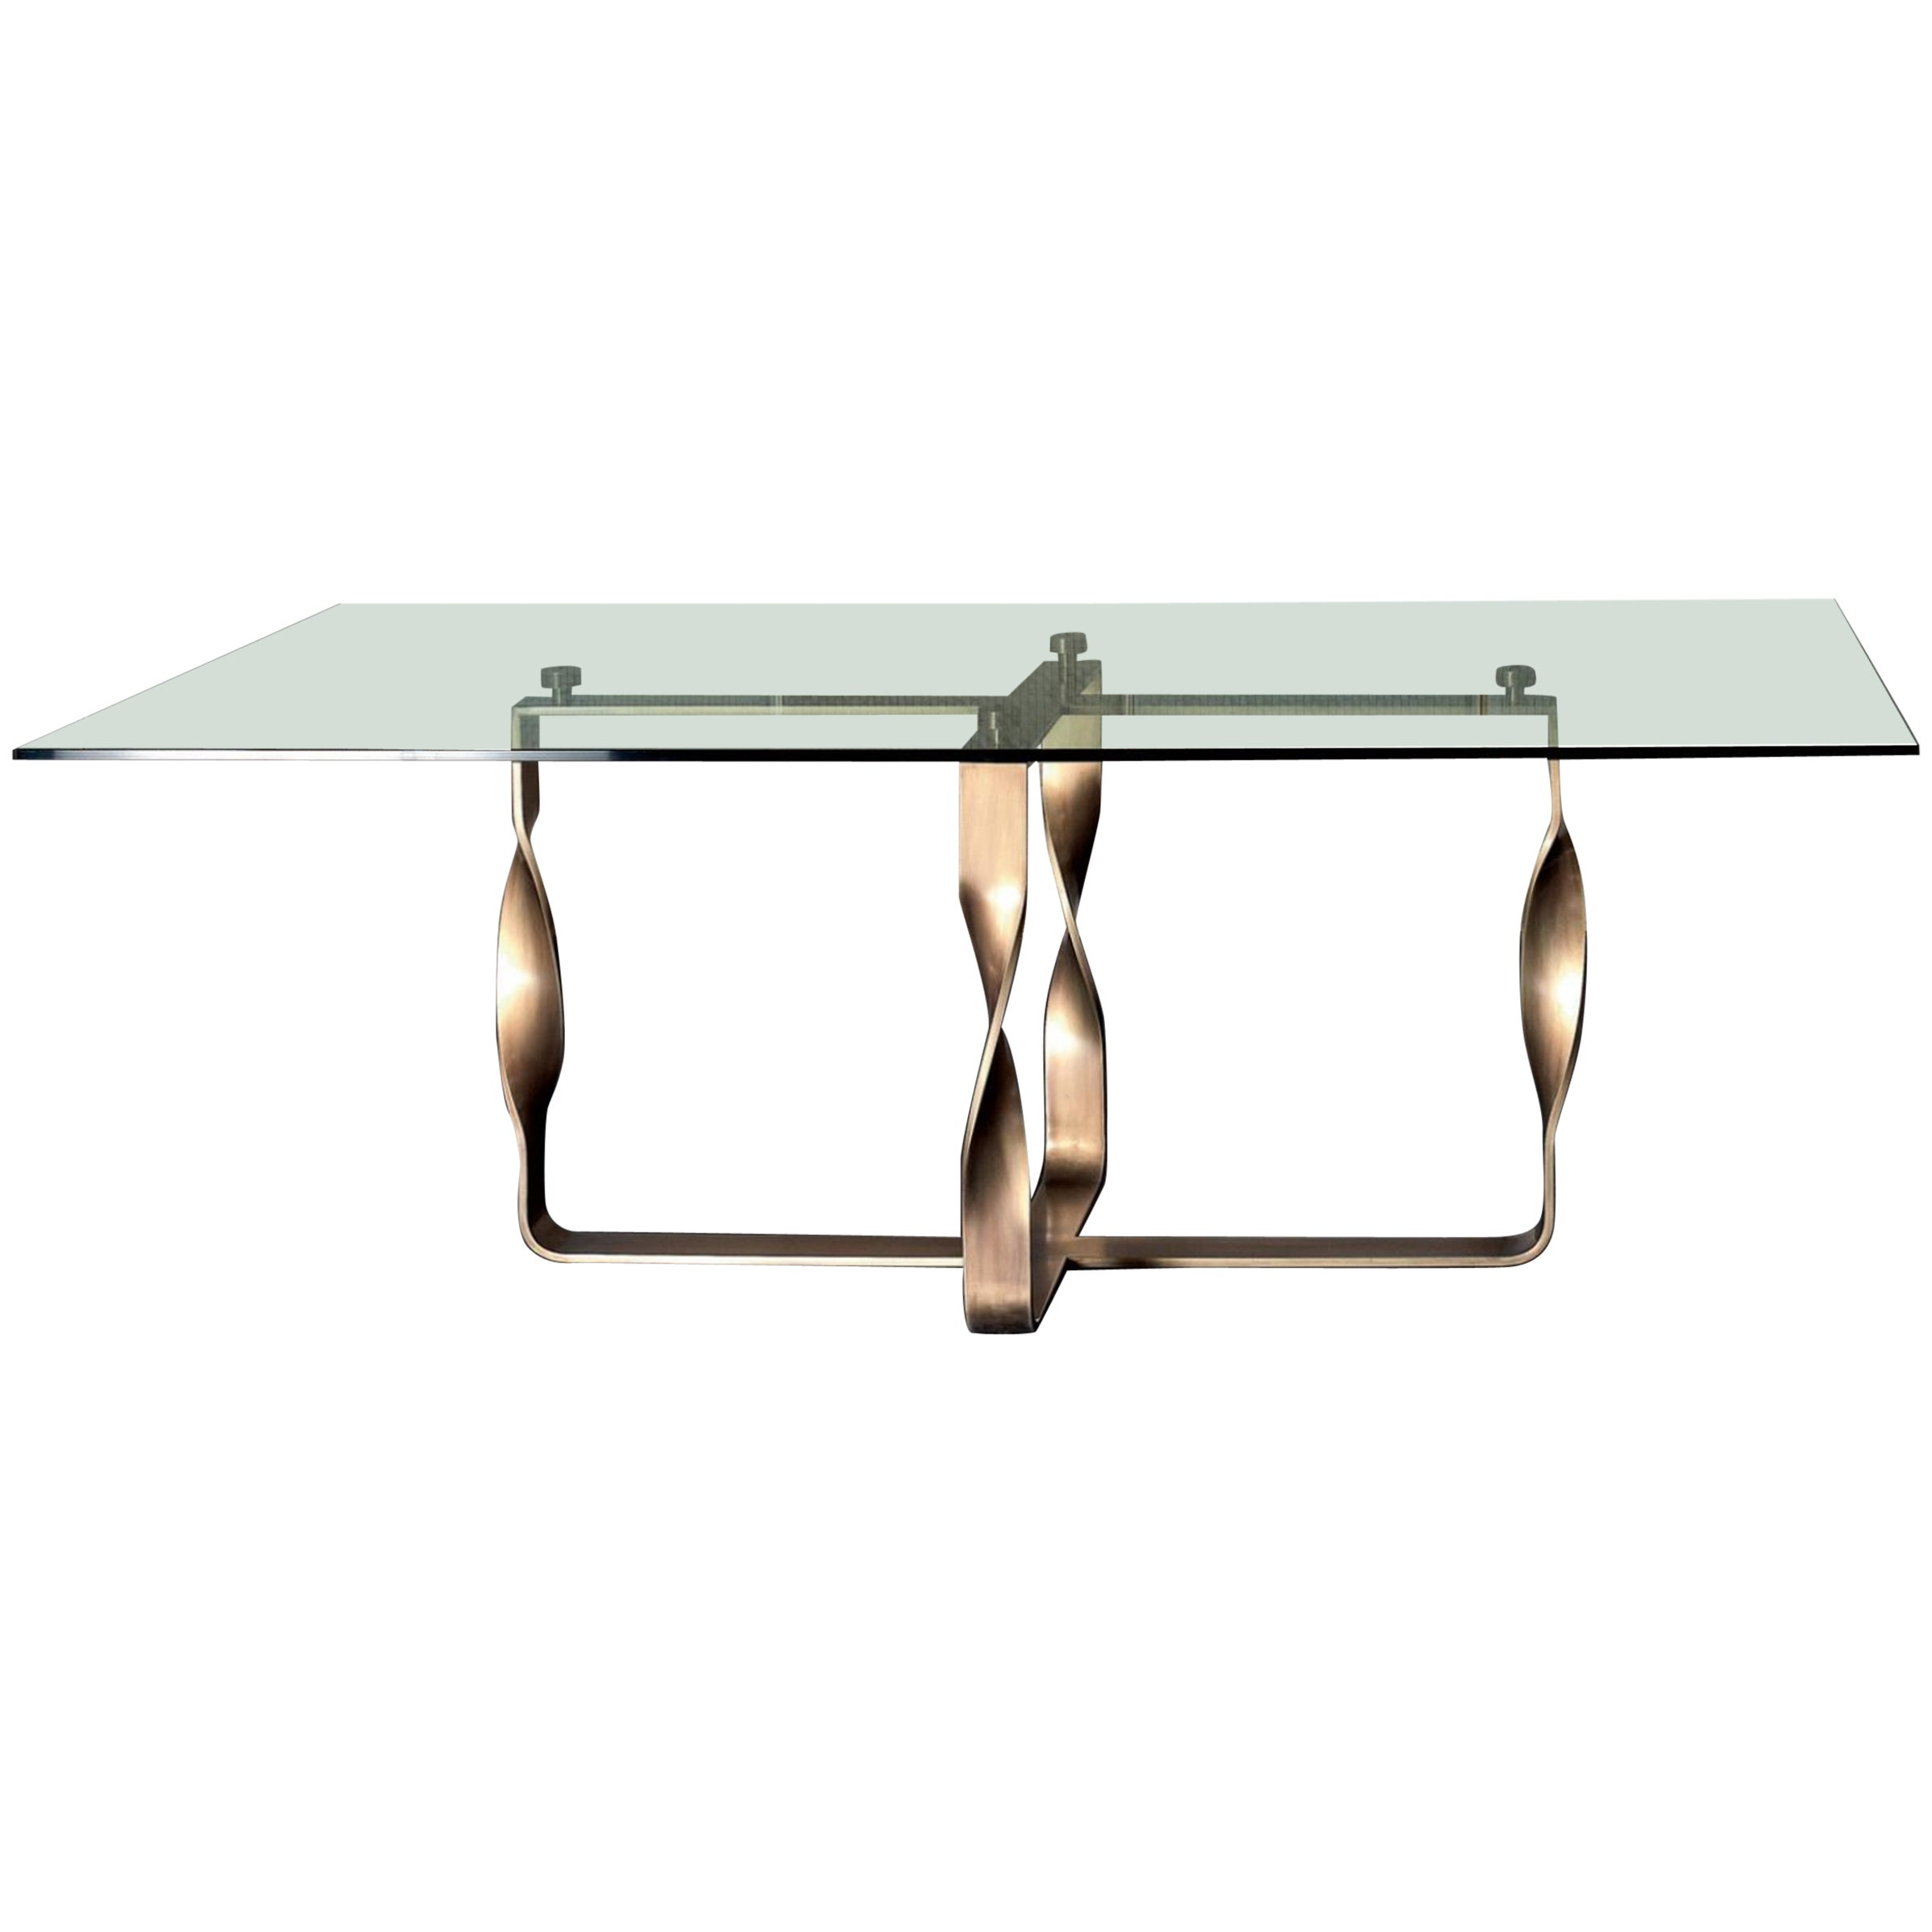 Torsade Table Bronze Base Legs and Glass Top